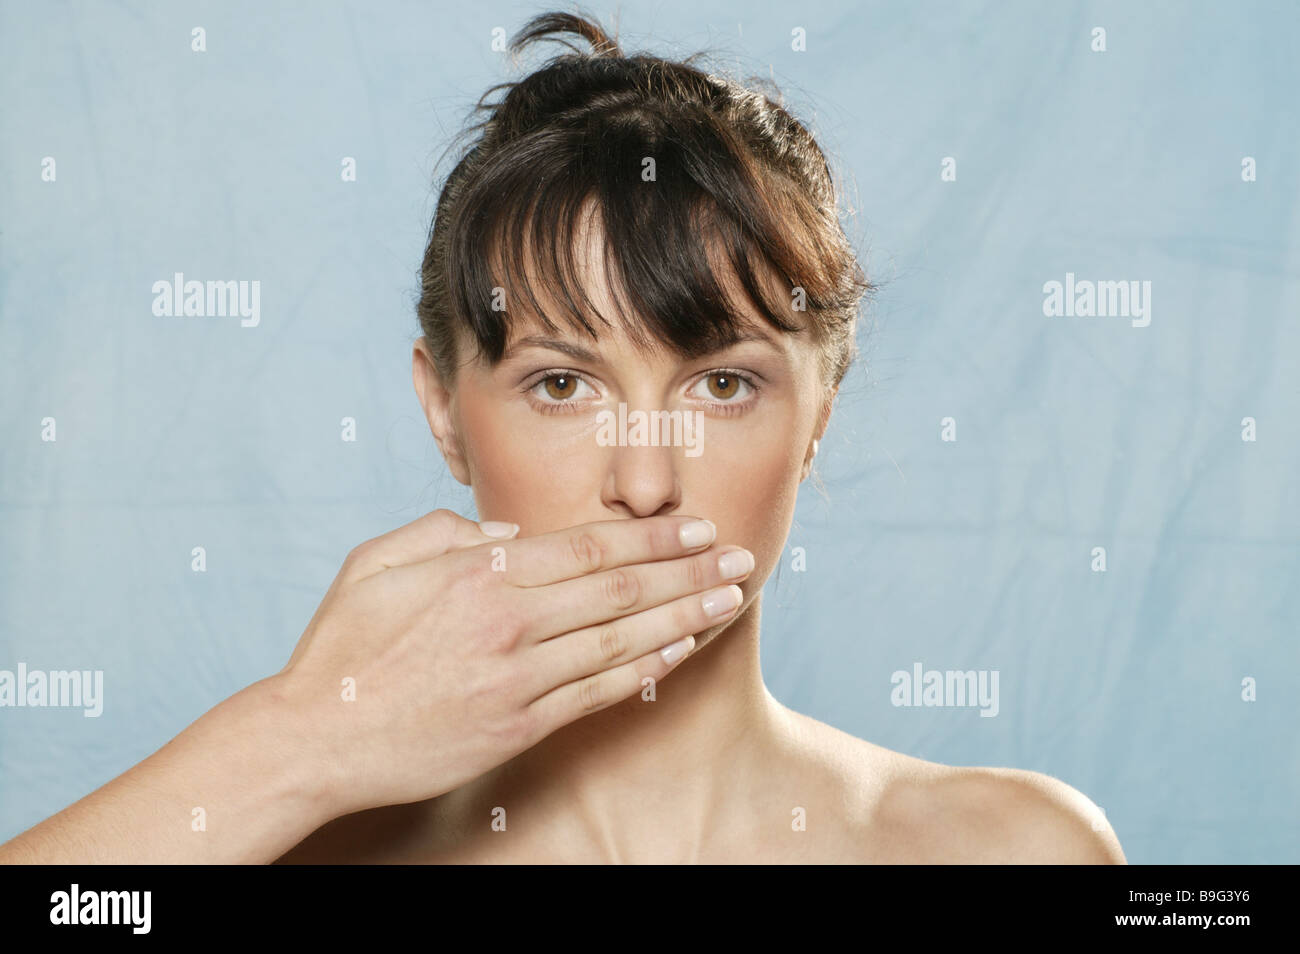 Woman young gesture hand mouth keeps closed portrait - Stock Image